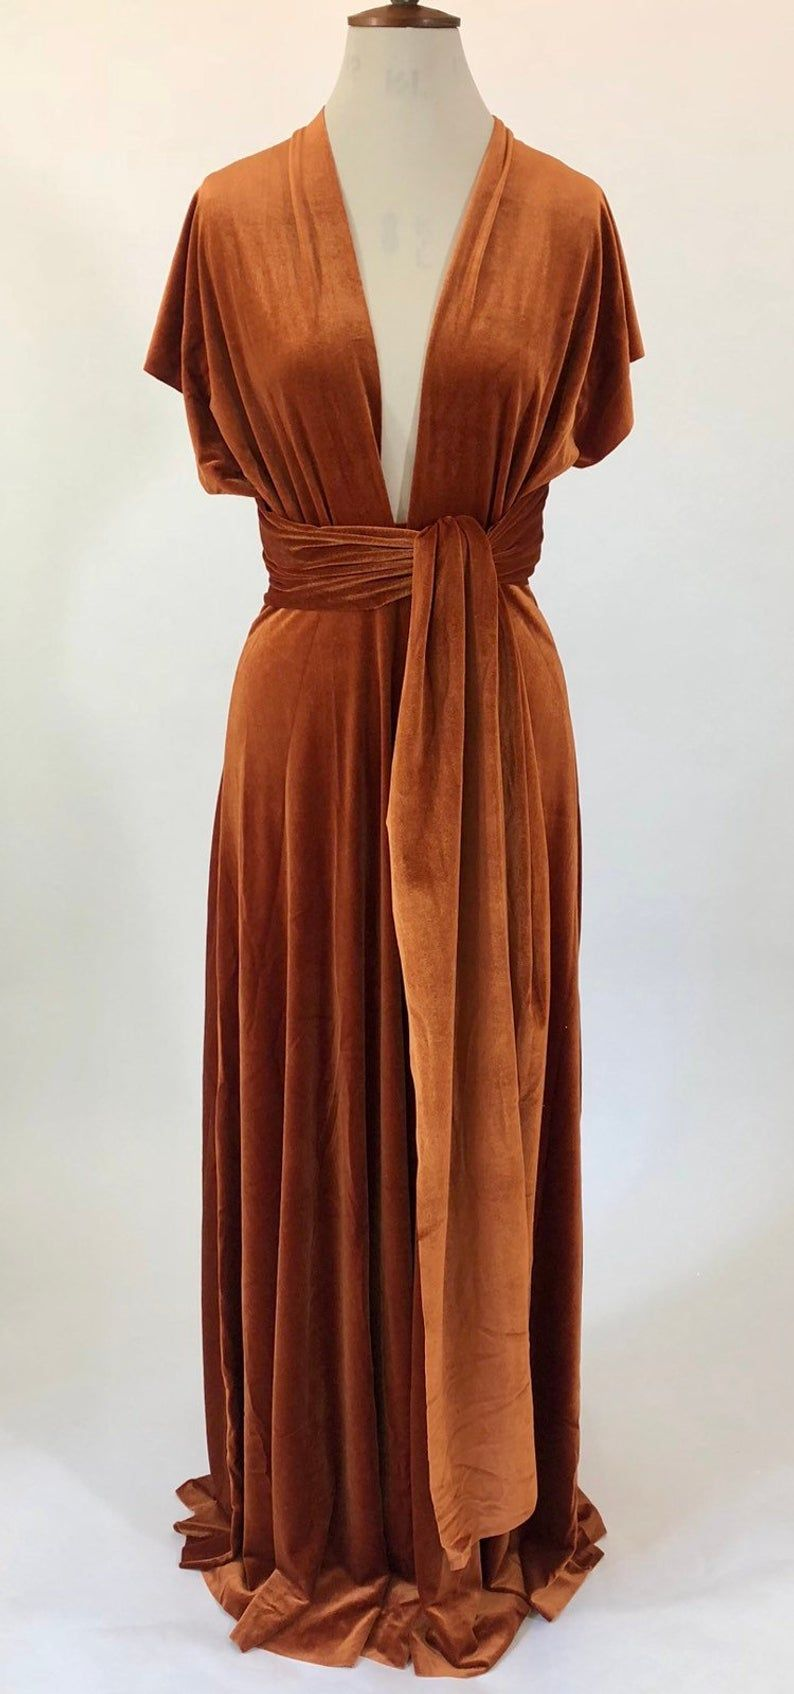 Copper bridesmaid dress rust multiway dress infinity dress  Etsy